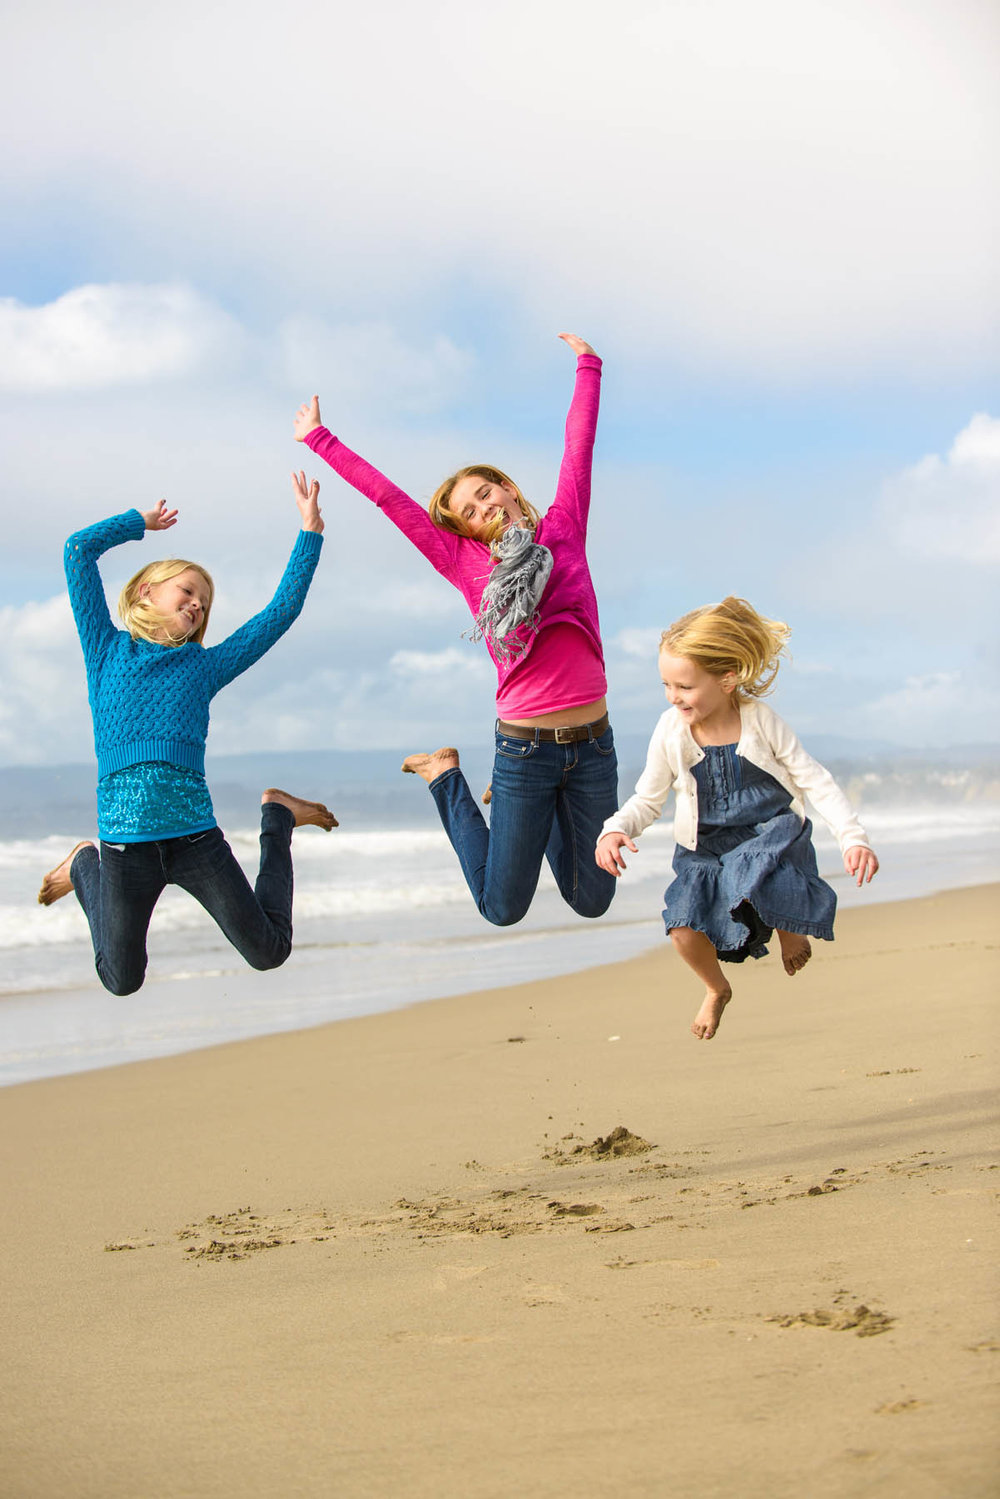 0351_d800_Kristin_Tom_Seascape_Beach_Aptos_Family_Photography.jpg